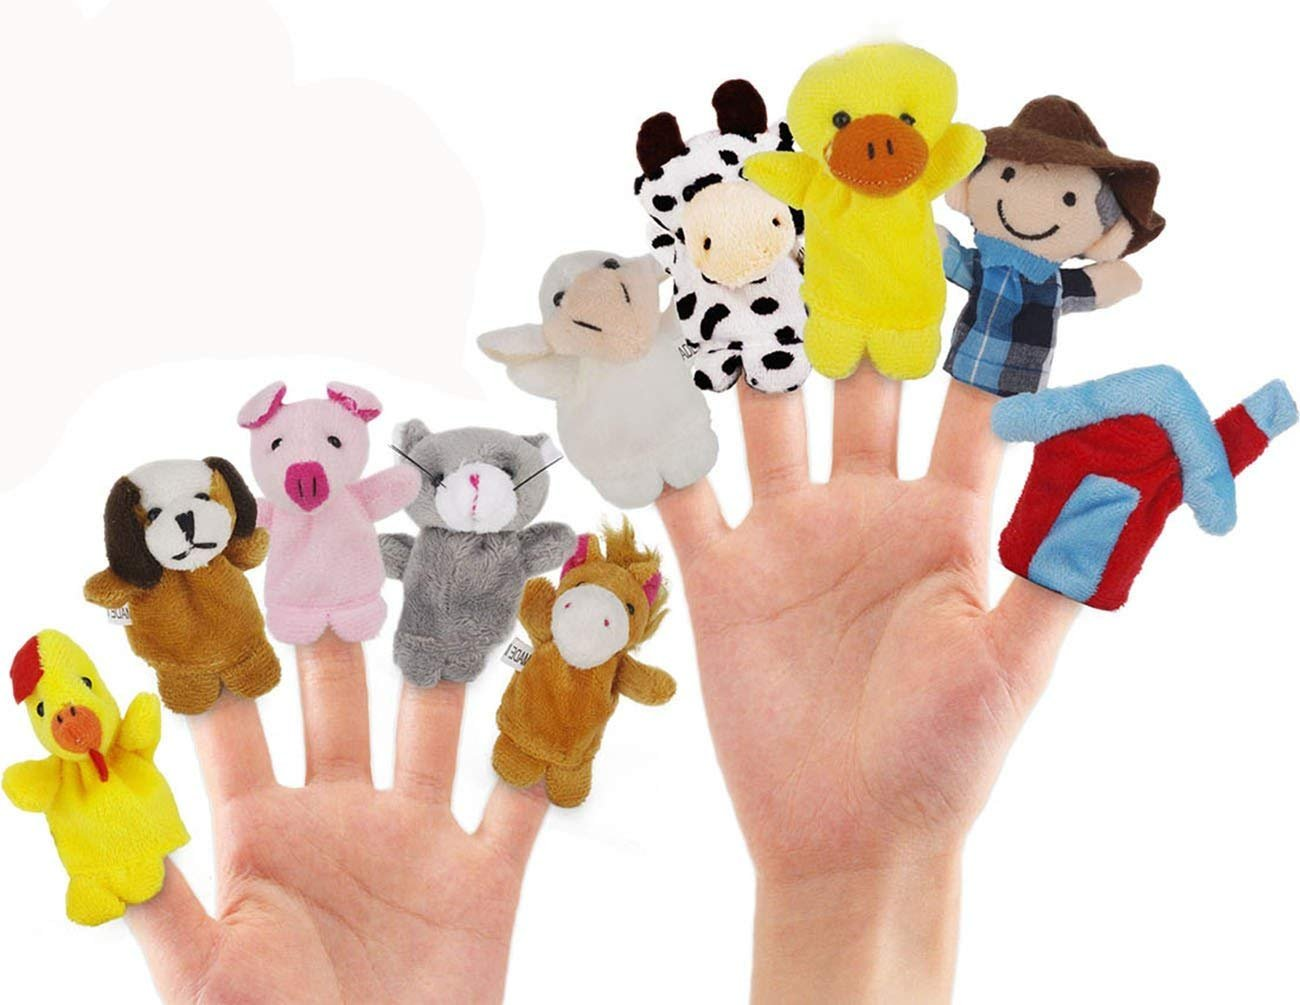 JZH Pack of 4 Different Cartoon Animal Soft Plush Hand Puppets Finger Puppets Soft Plus, Baby Soft Velvet Dolls Props Toys Storytelling Toys.